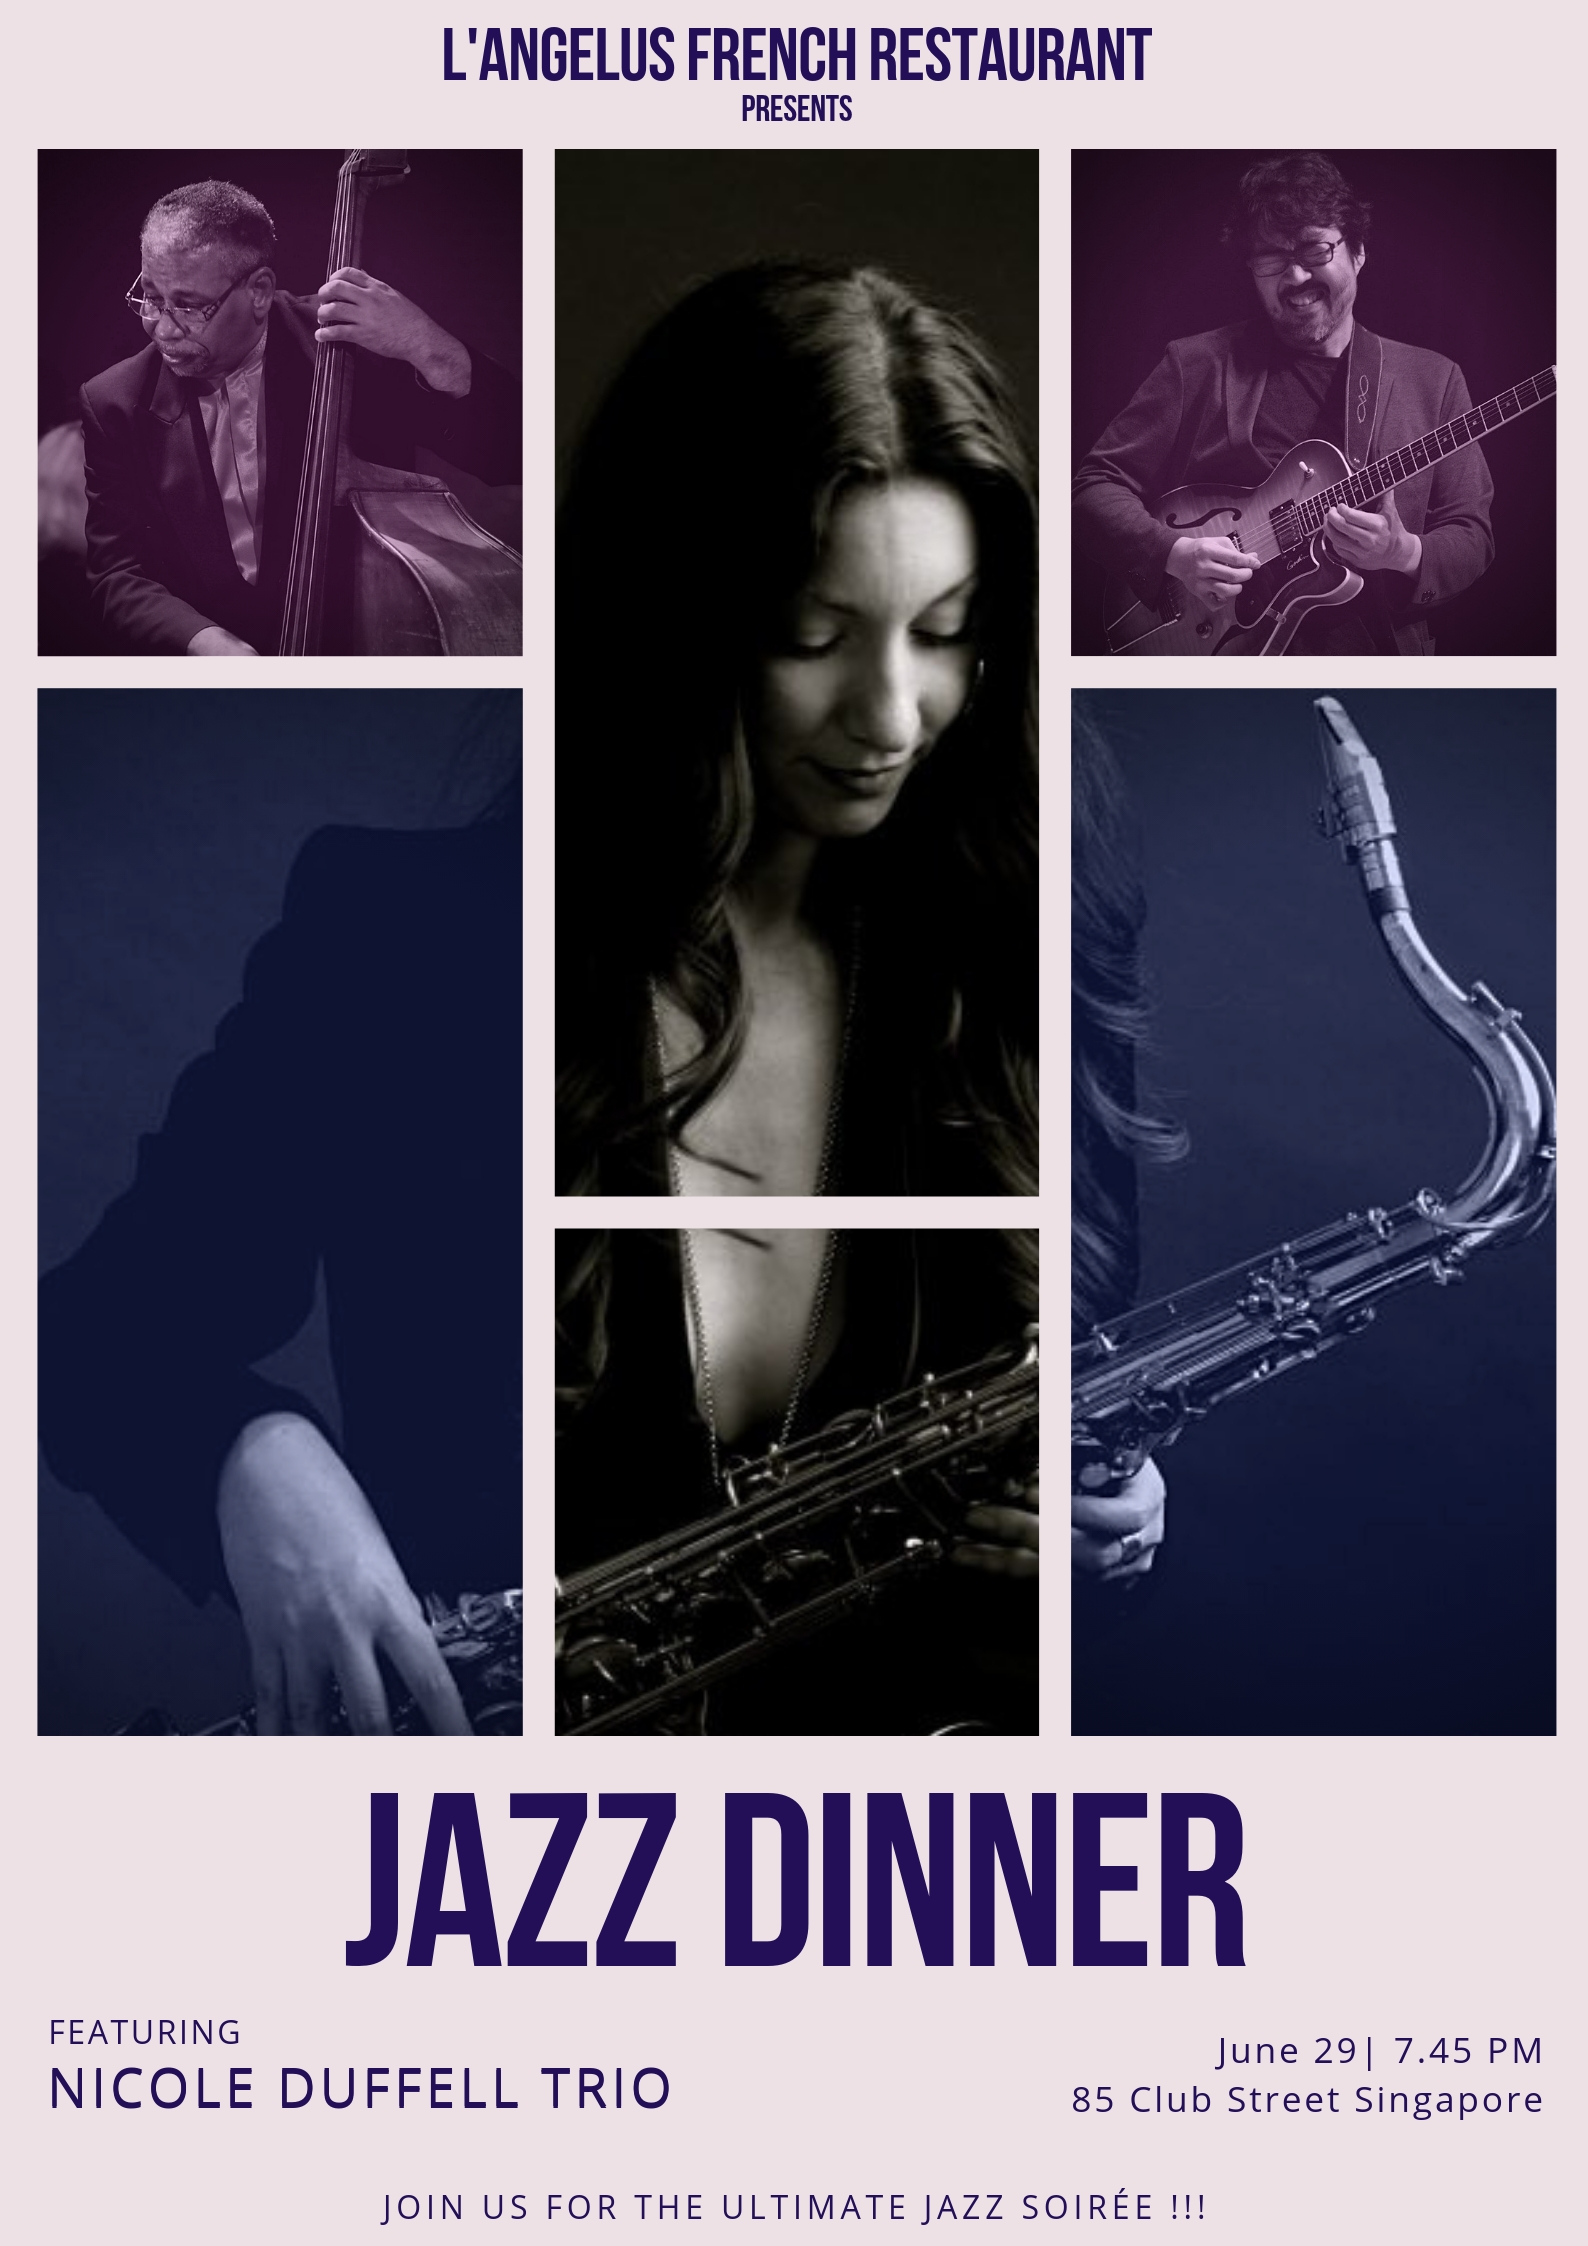 Elegant French Cuisine with Live Groovy Jazz at Club Street